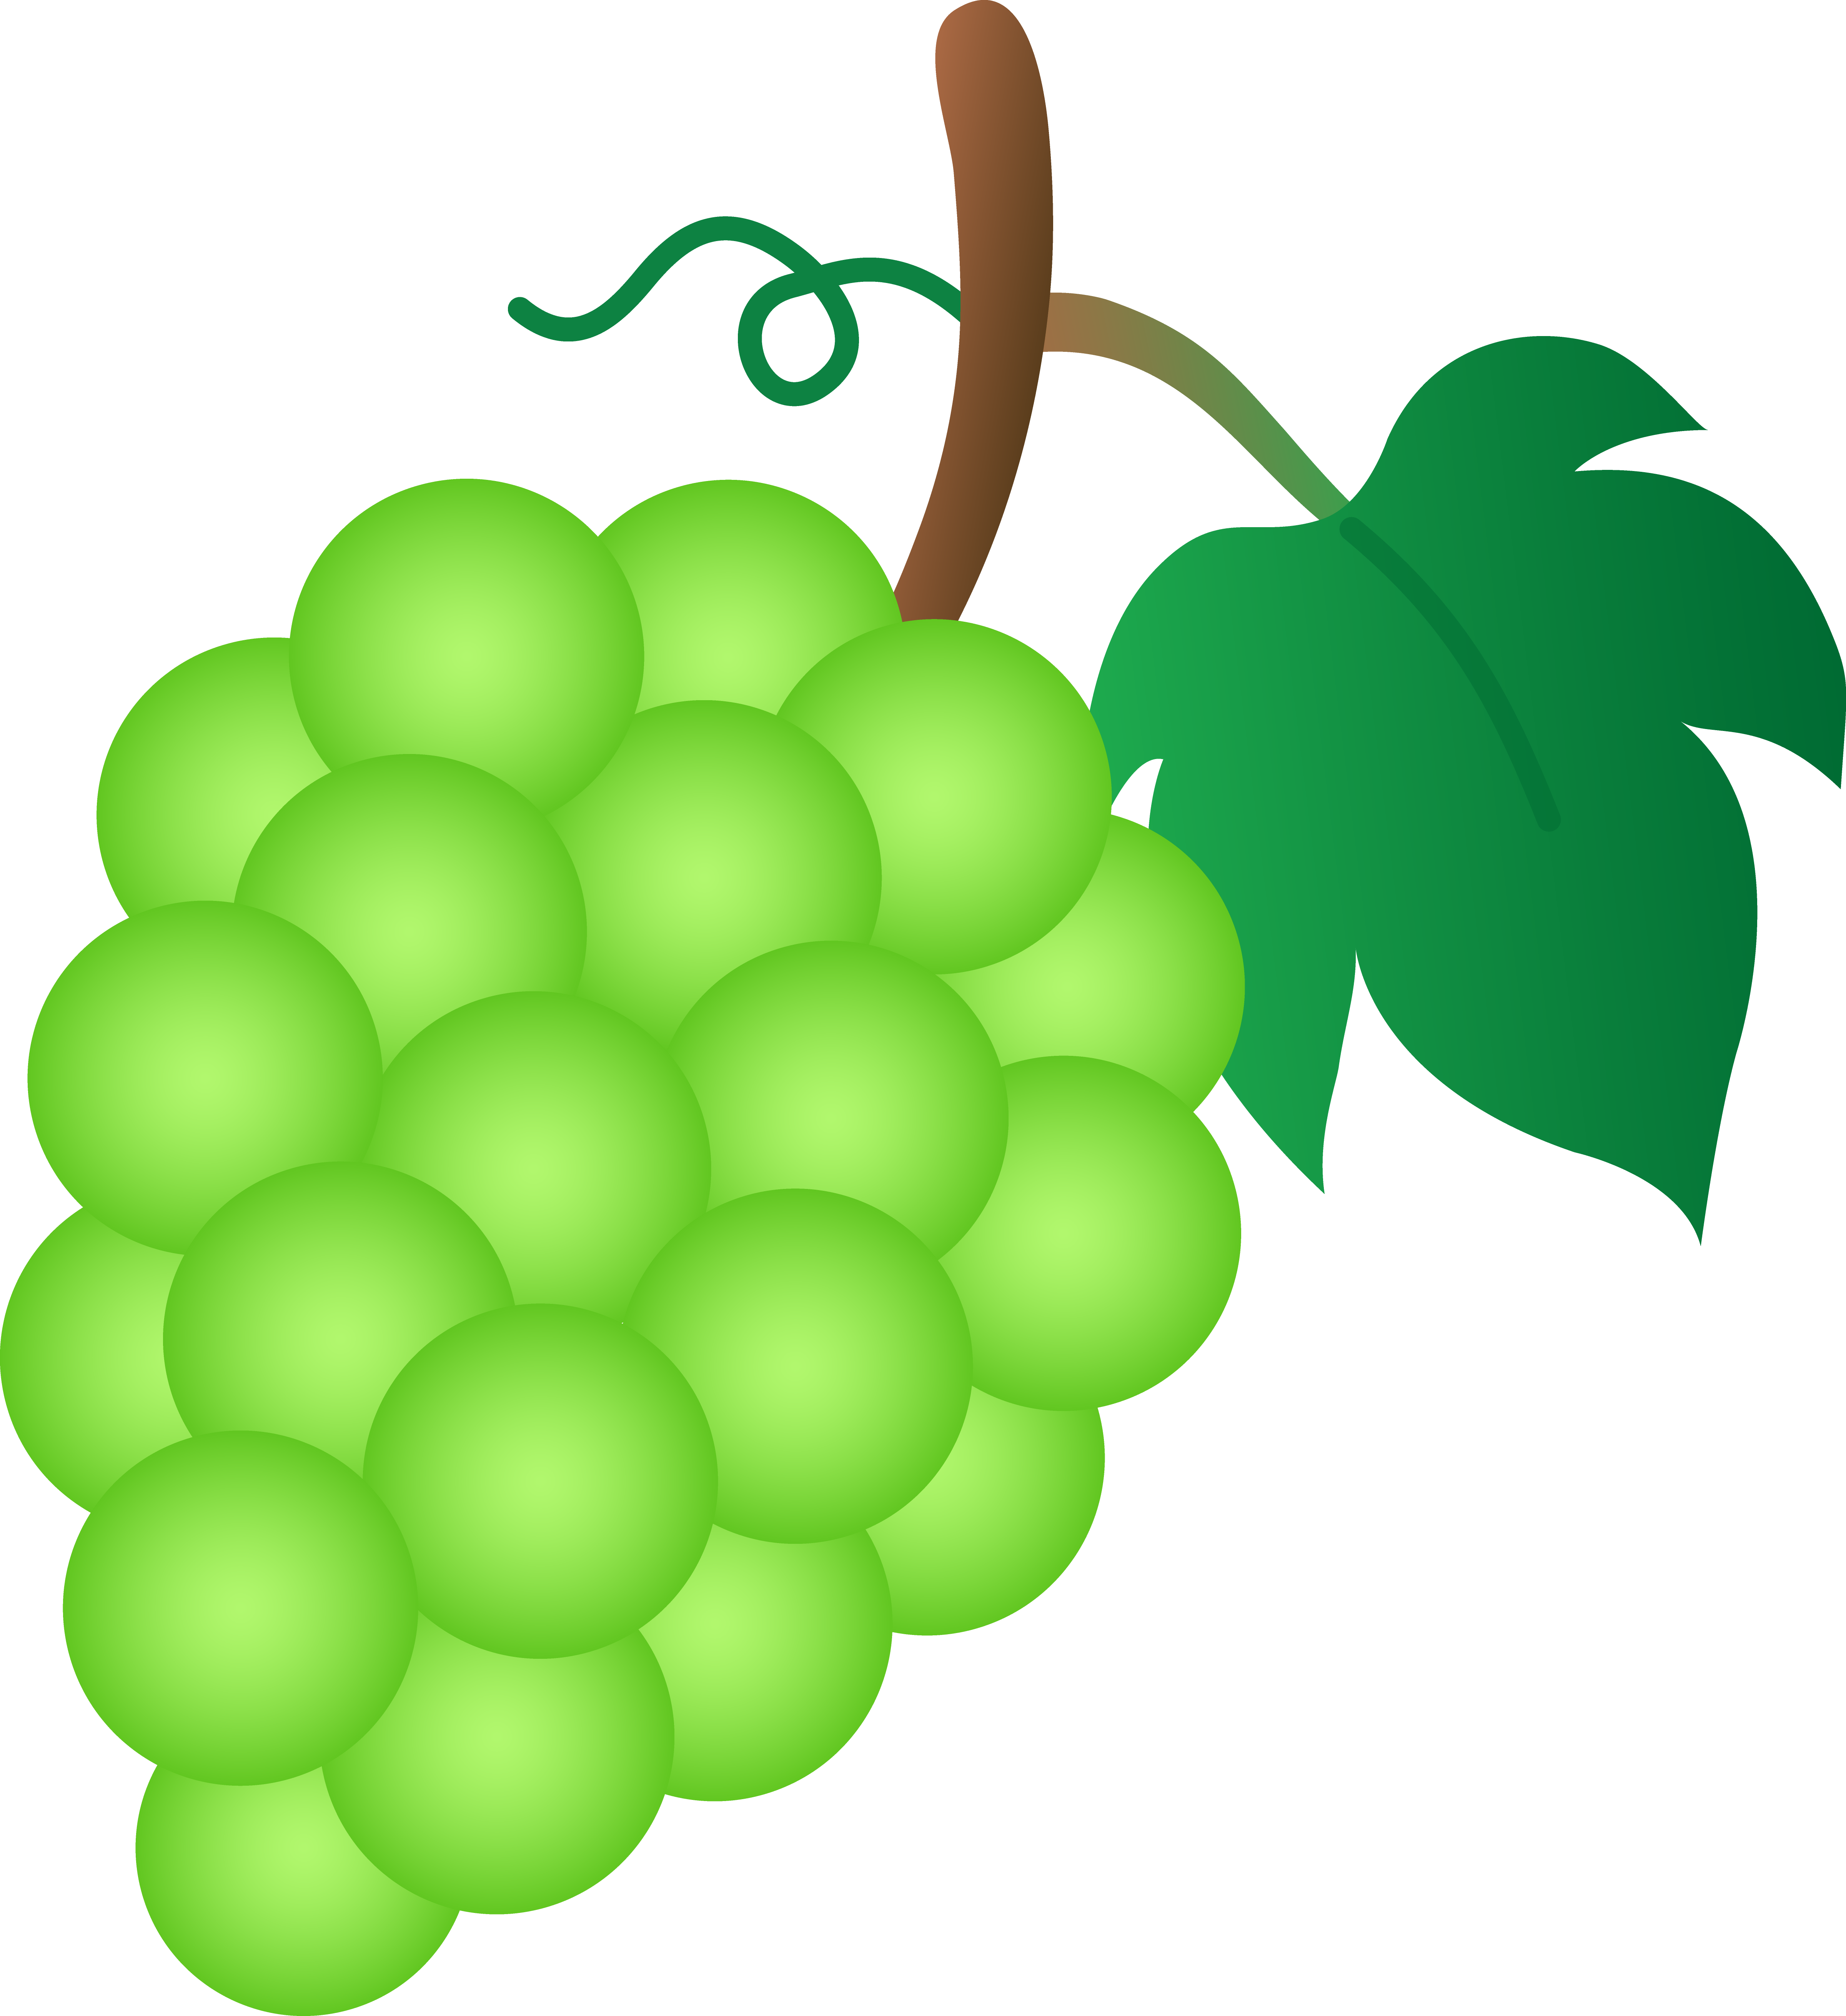 Graapes clipart image library stock Free Art Grapes, Download Free Clip Art, Free Clip Art on Clipart ... image library stock